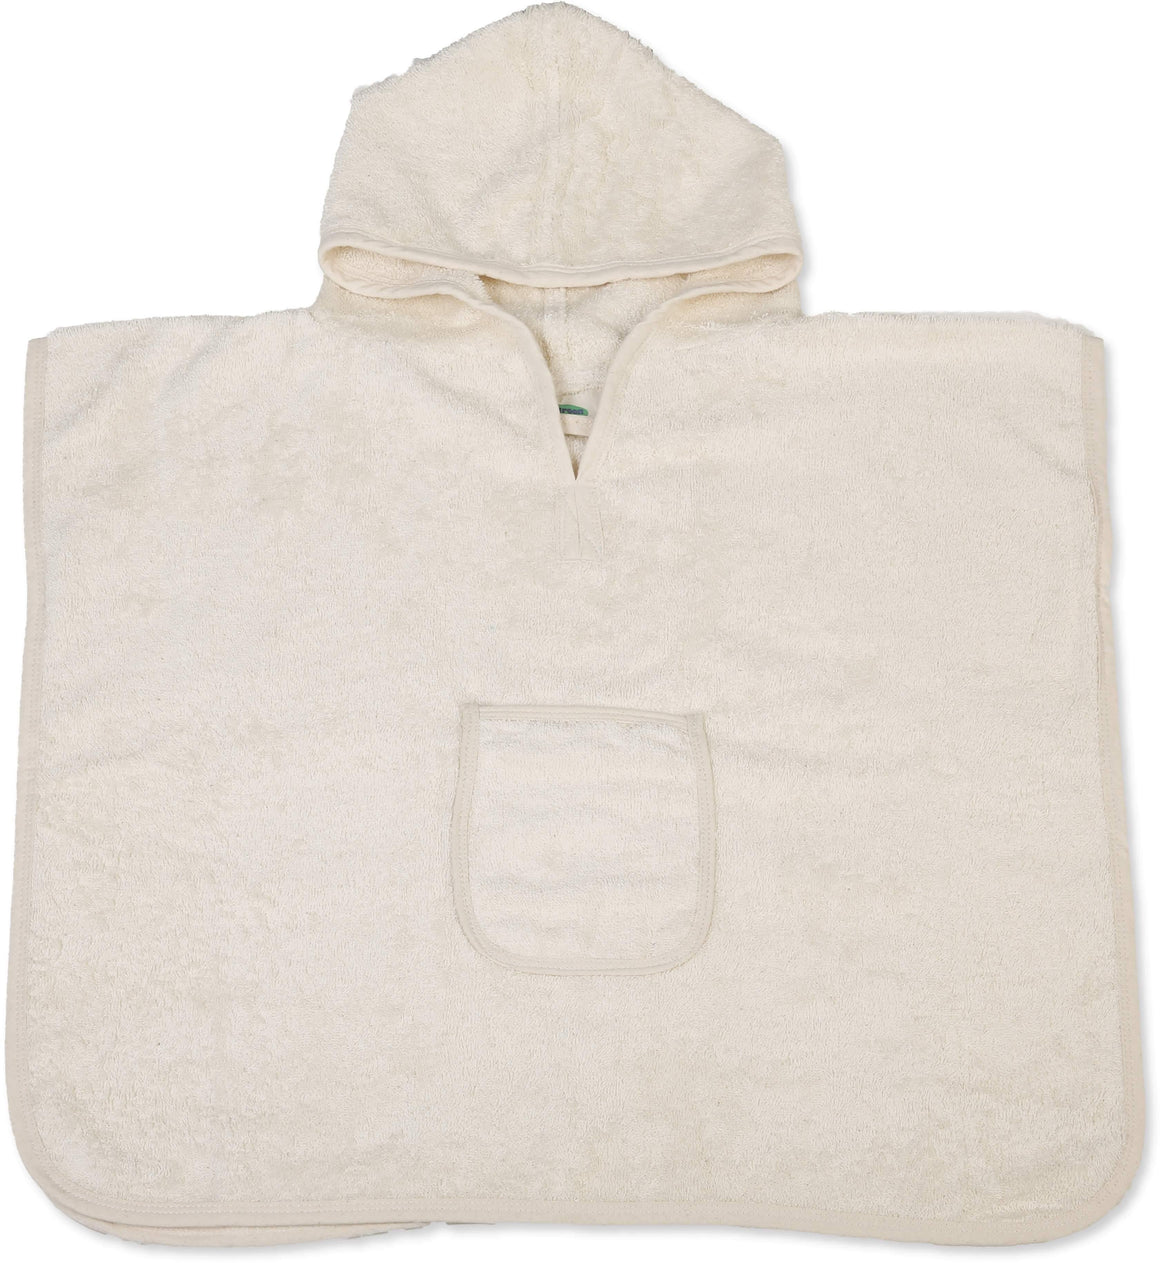 Organic Cotton Baby Poncho - Eco Bath London